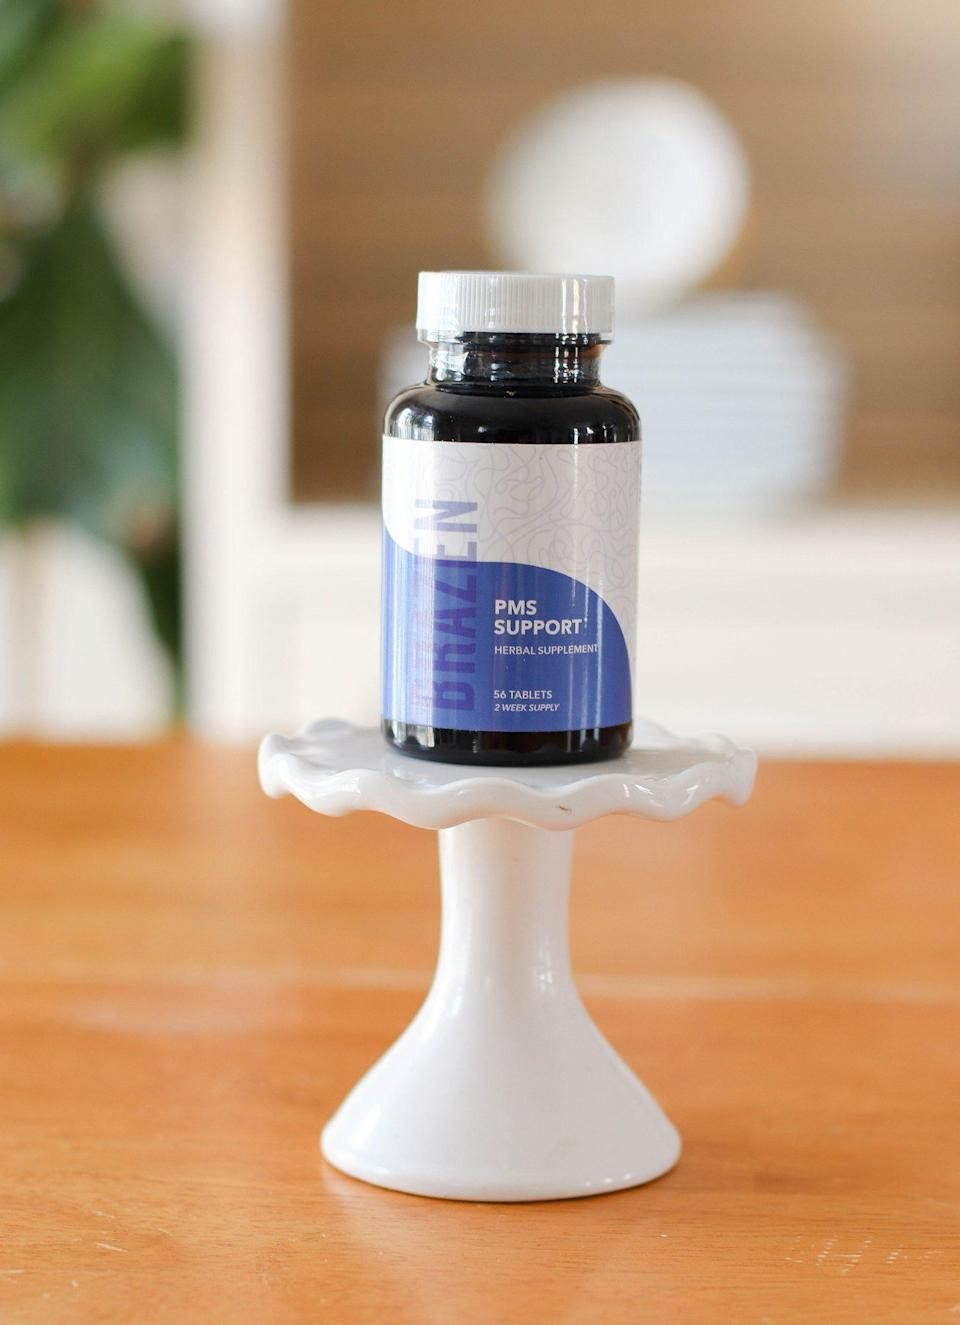 """<p>This herbal formula was developed by <a href=""""https://kirstenkarchmer.com/"""" rel=""""nofollow noopener"""" target=""""_blank"""" data-ylk=""""slk:Kirsten Karchmer"""" class=""""link rapid-noclick-resp"""">Kirsten Karchmer</a>, an acupuncturist who has dedicated her career to helping women with PMS and PMDD.</p> <p>Karchmer tells PEOPLE poor digestion is one of the common reasons women experience painful symptoms, and our tester (who has tried everything, previously with little success) had positive results. She noticed less bloating after trying the formula for two months.</p> <p>Consult with your doctor if you are taking prescription medications. If you get the all-clear, Karchmer recommends taking two tablets a day starting 14 days before your period. </p> <p><a href=""""https://foreverbrazen.com/shop"""" rel=""""nofollow noopener"""" target=""""_blank"""" data-ylk=""""slk:Brazen PMS Support, $29.99"""" class=""""link rapid-noclick-resp"""">Brazen PMS Support, $29.99</a></p>"""